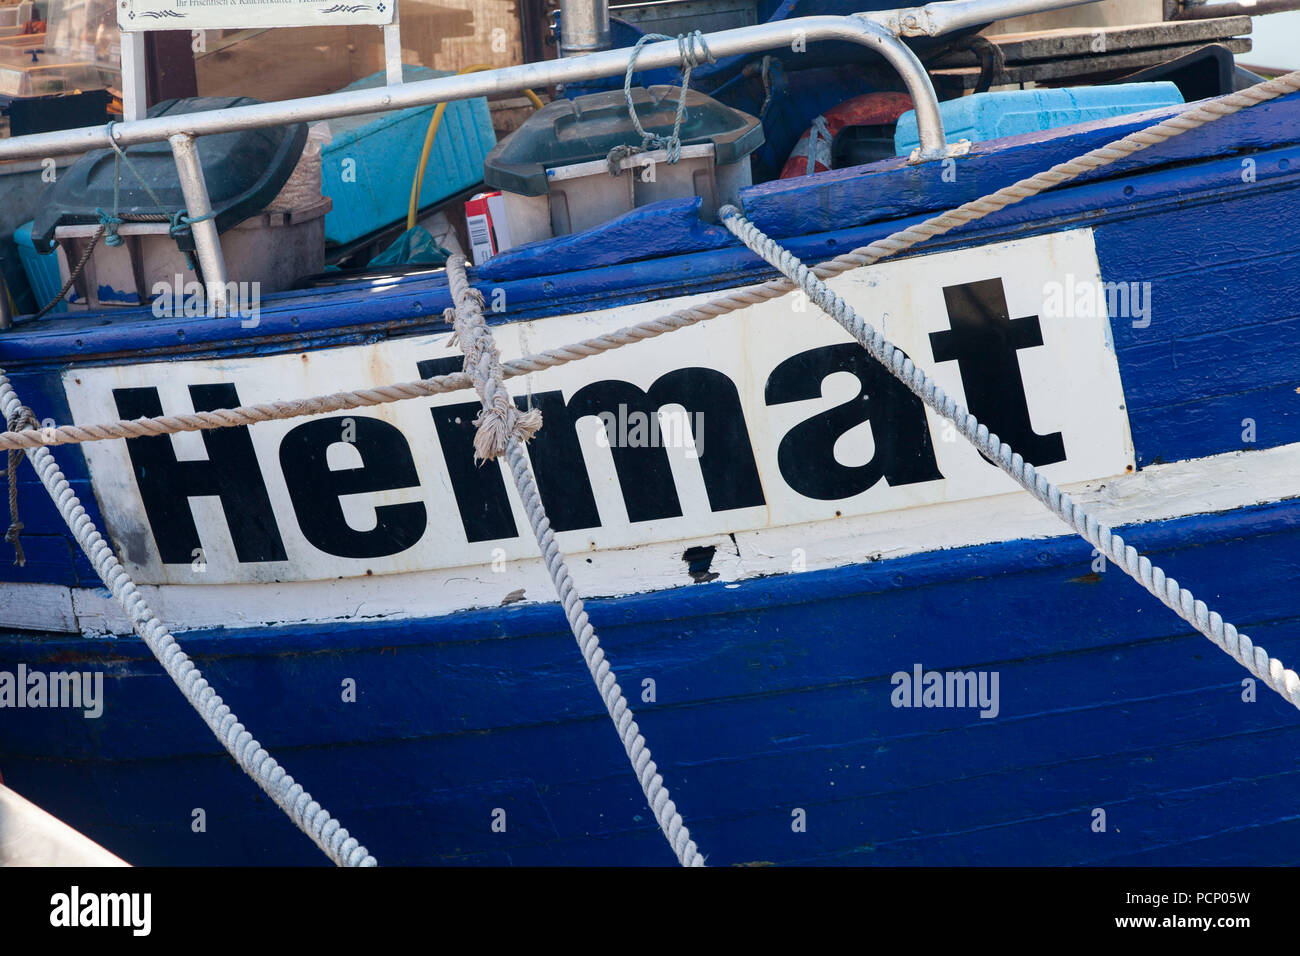 Germany, Baltic Sea, Island of Rügen, Sassnitz, boat with 'Heimat' written on its side - Stock Image